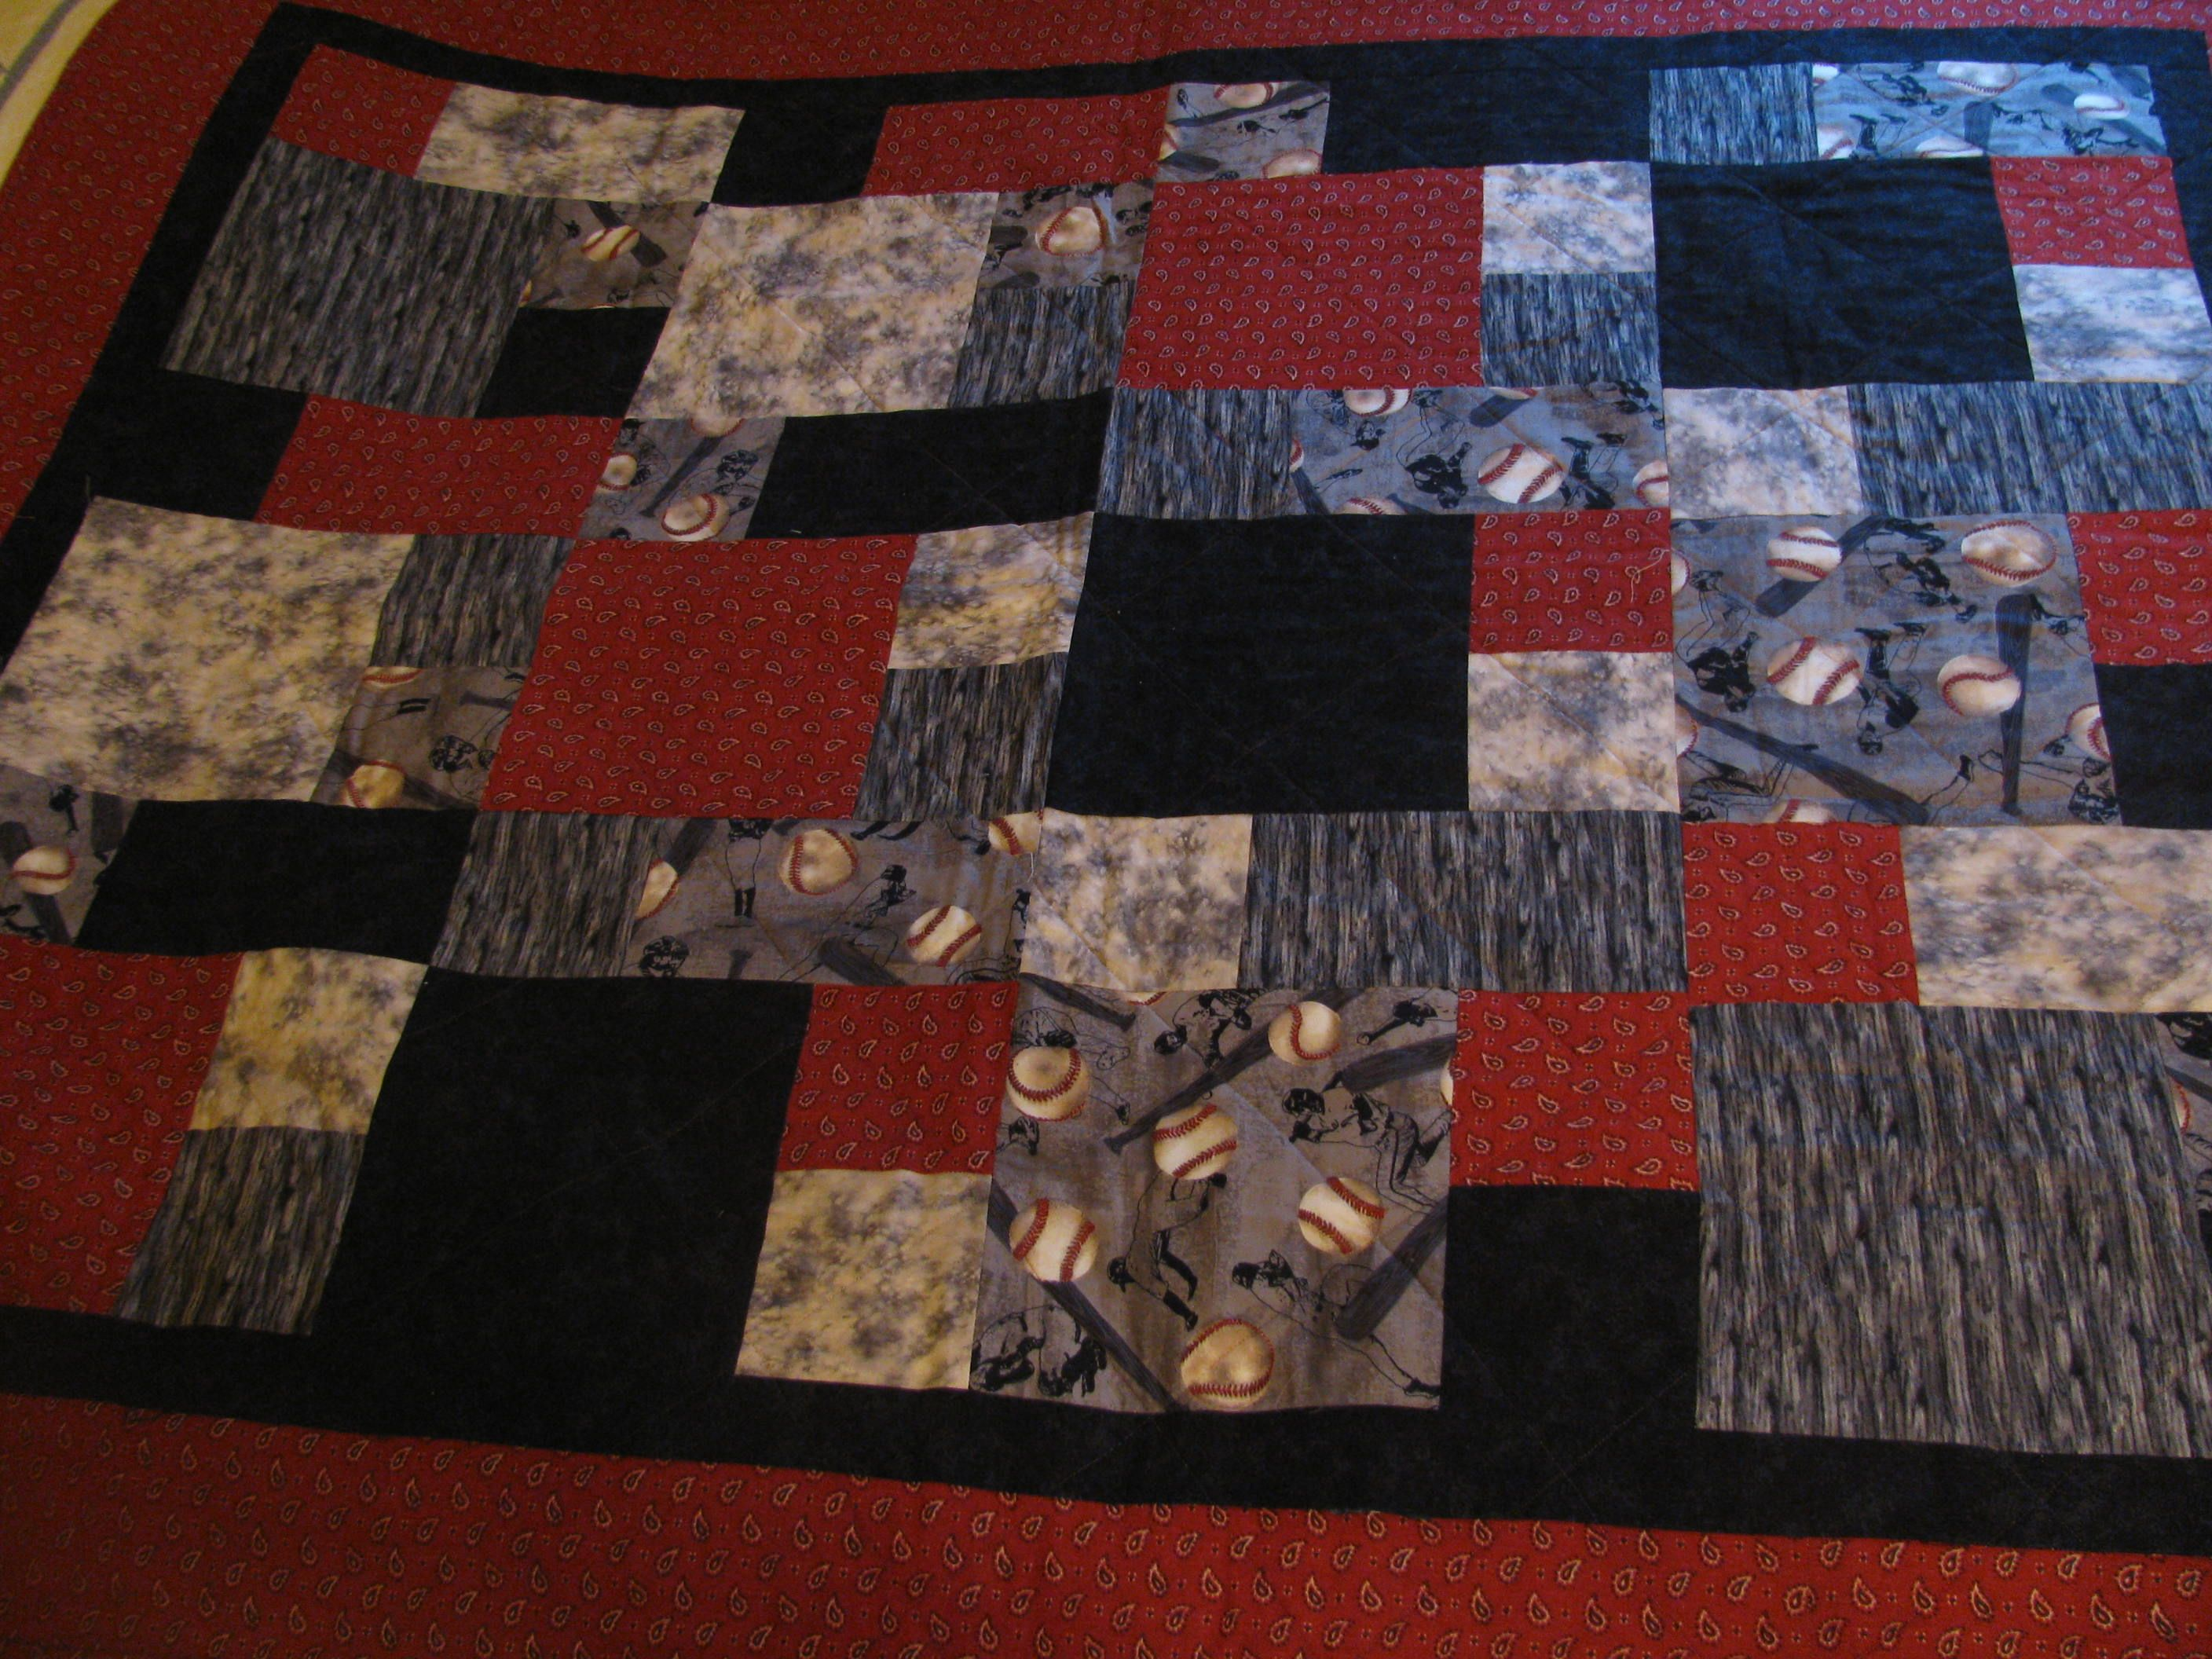 ISO baseball quilt ideas for adult quilt | Fun food | Pinterest ... : graduation quilt ideas - Adamdwight.com